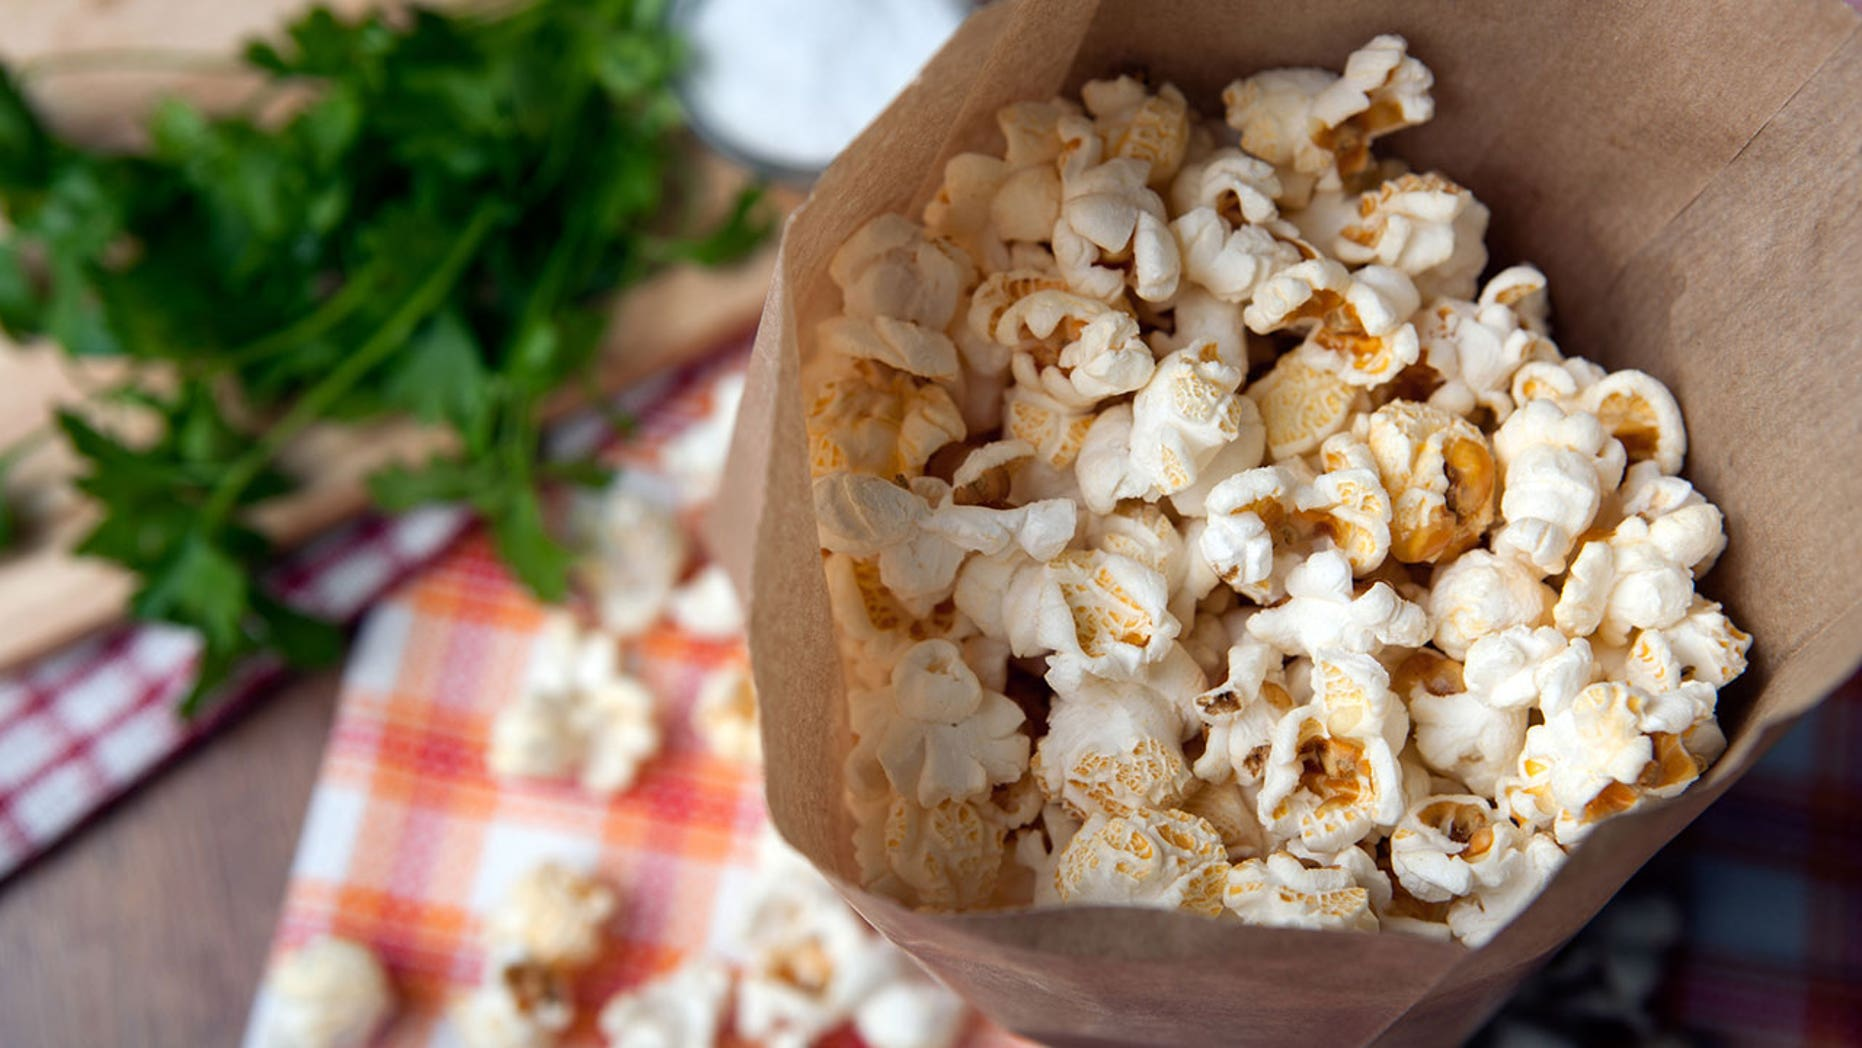 Looking for a more wholesome alternative for store-bought microwave popcorn? Just make your own in a paper bag.